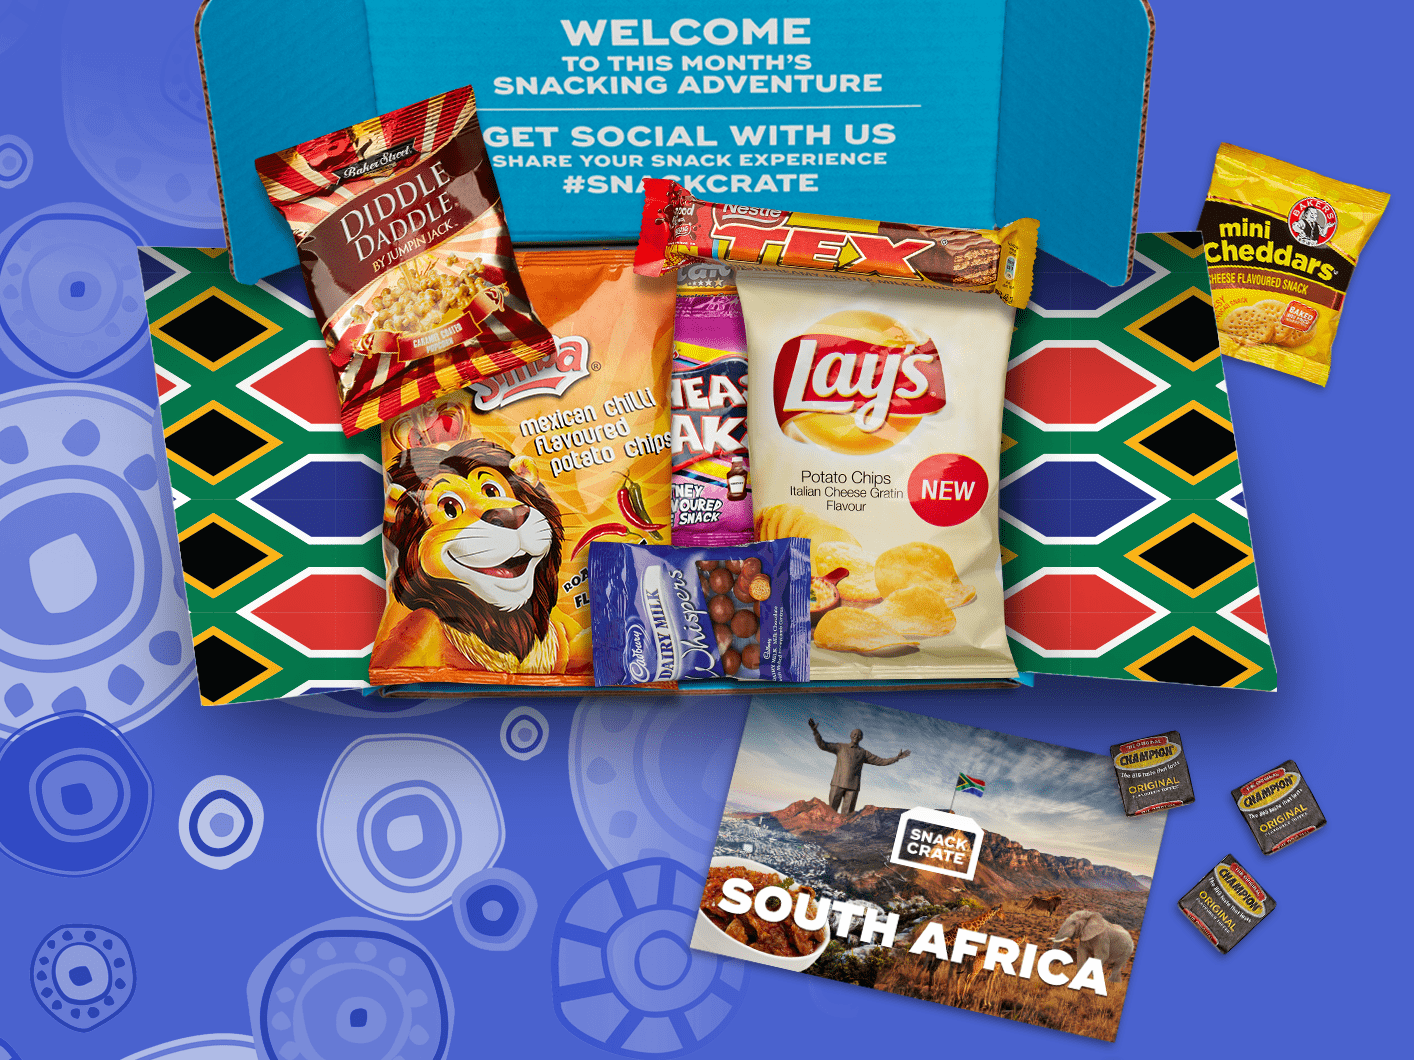 South Africa Snackcrate